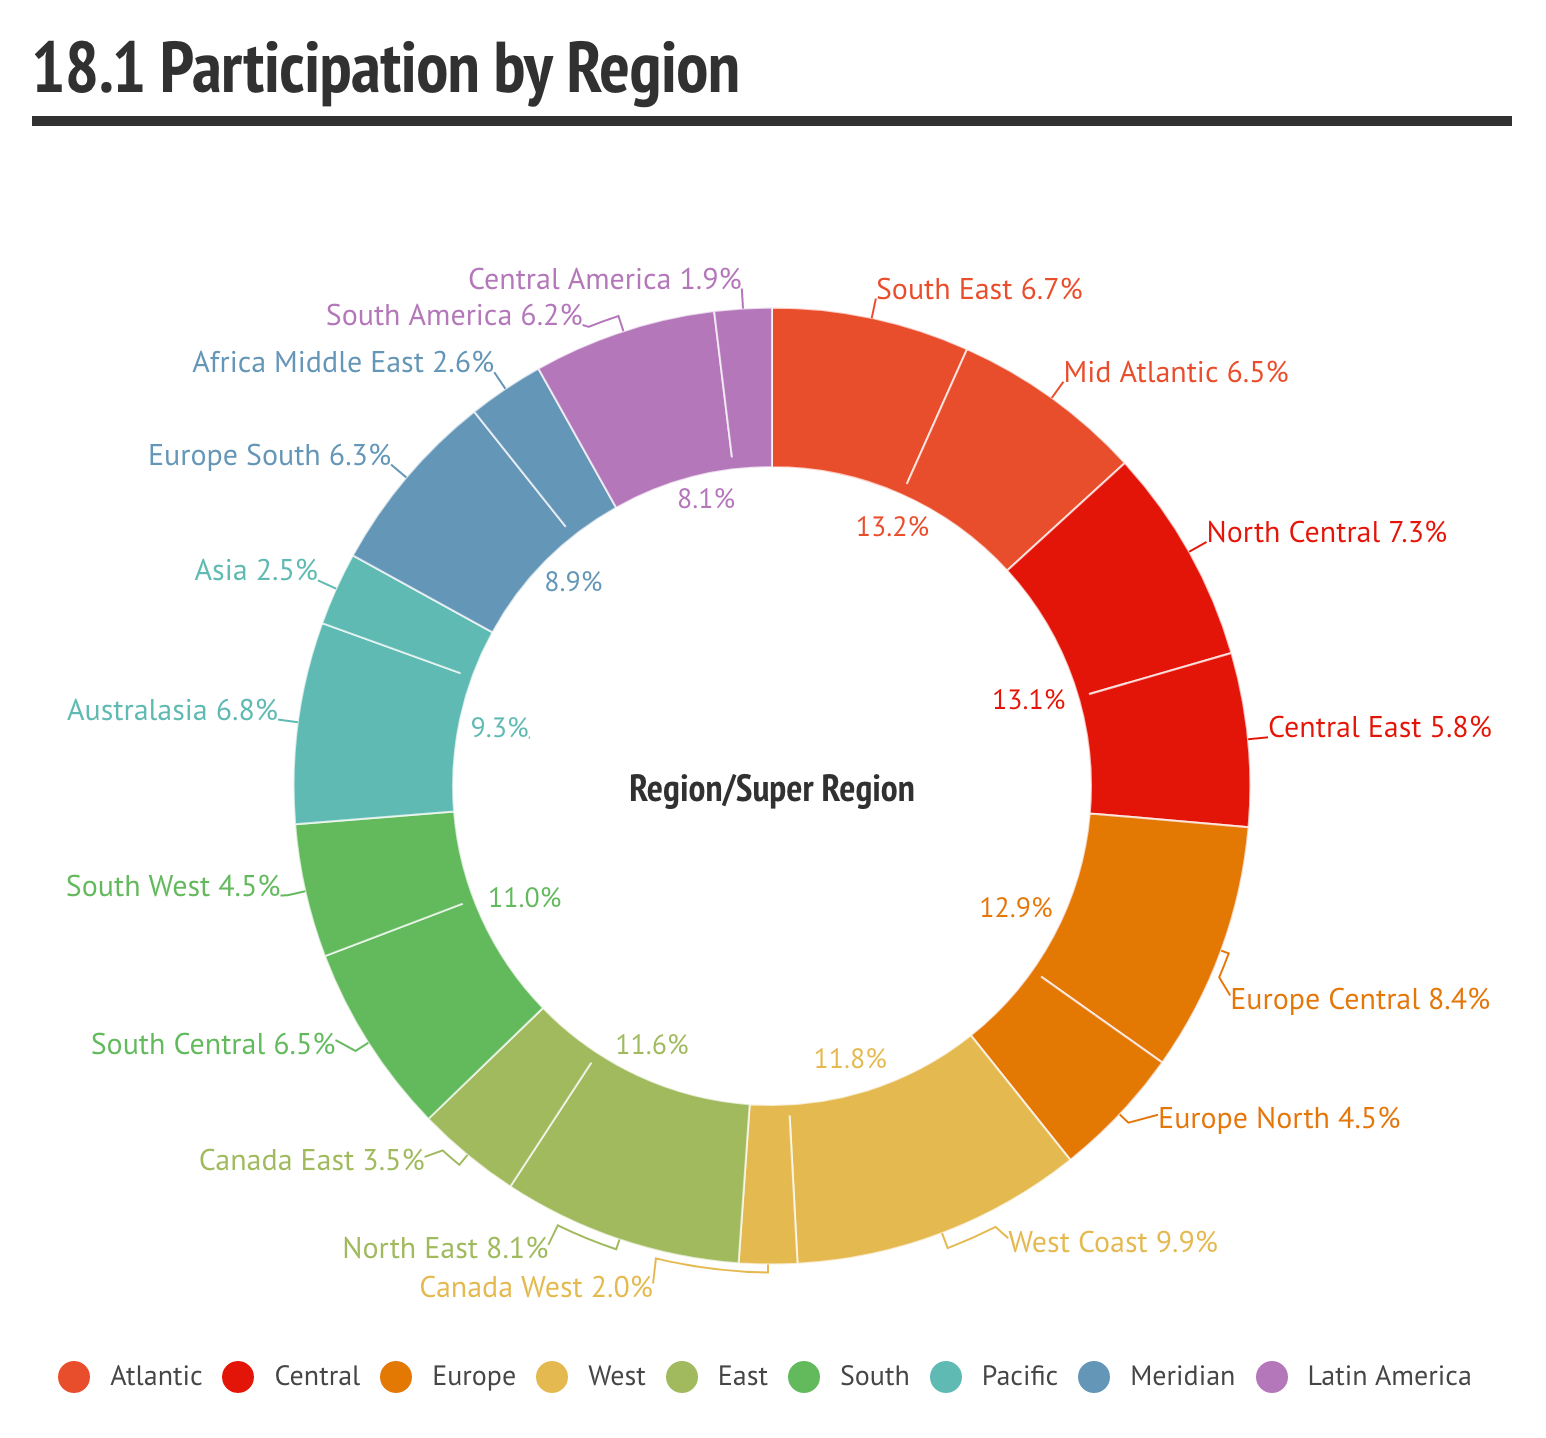 18.1 Participation by Region